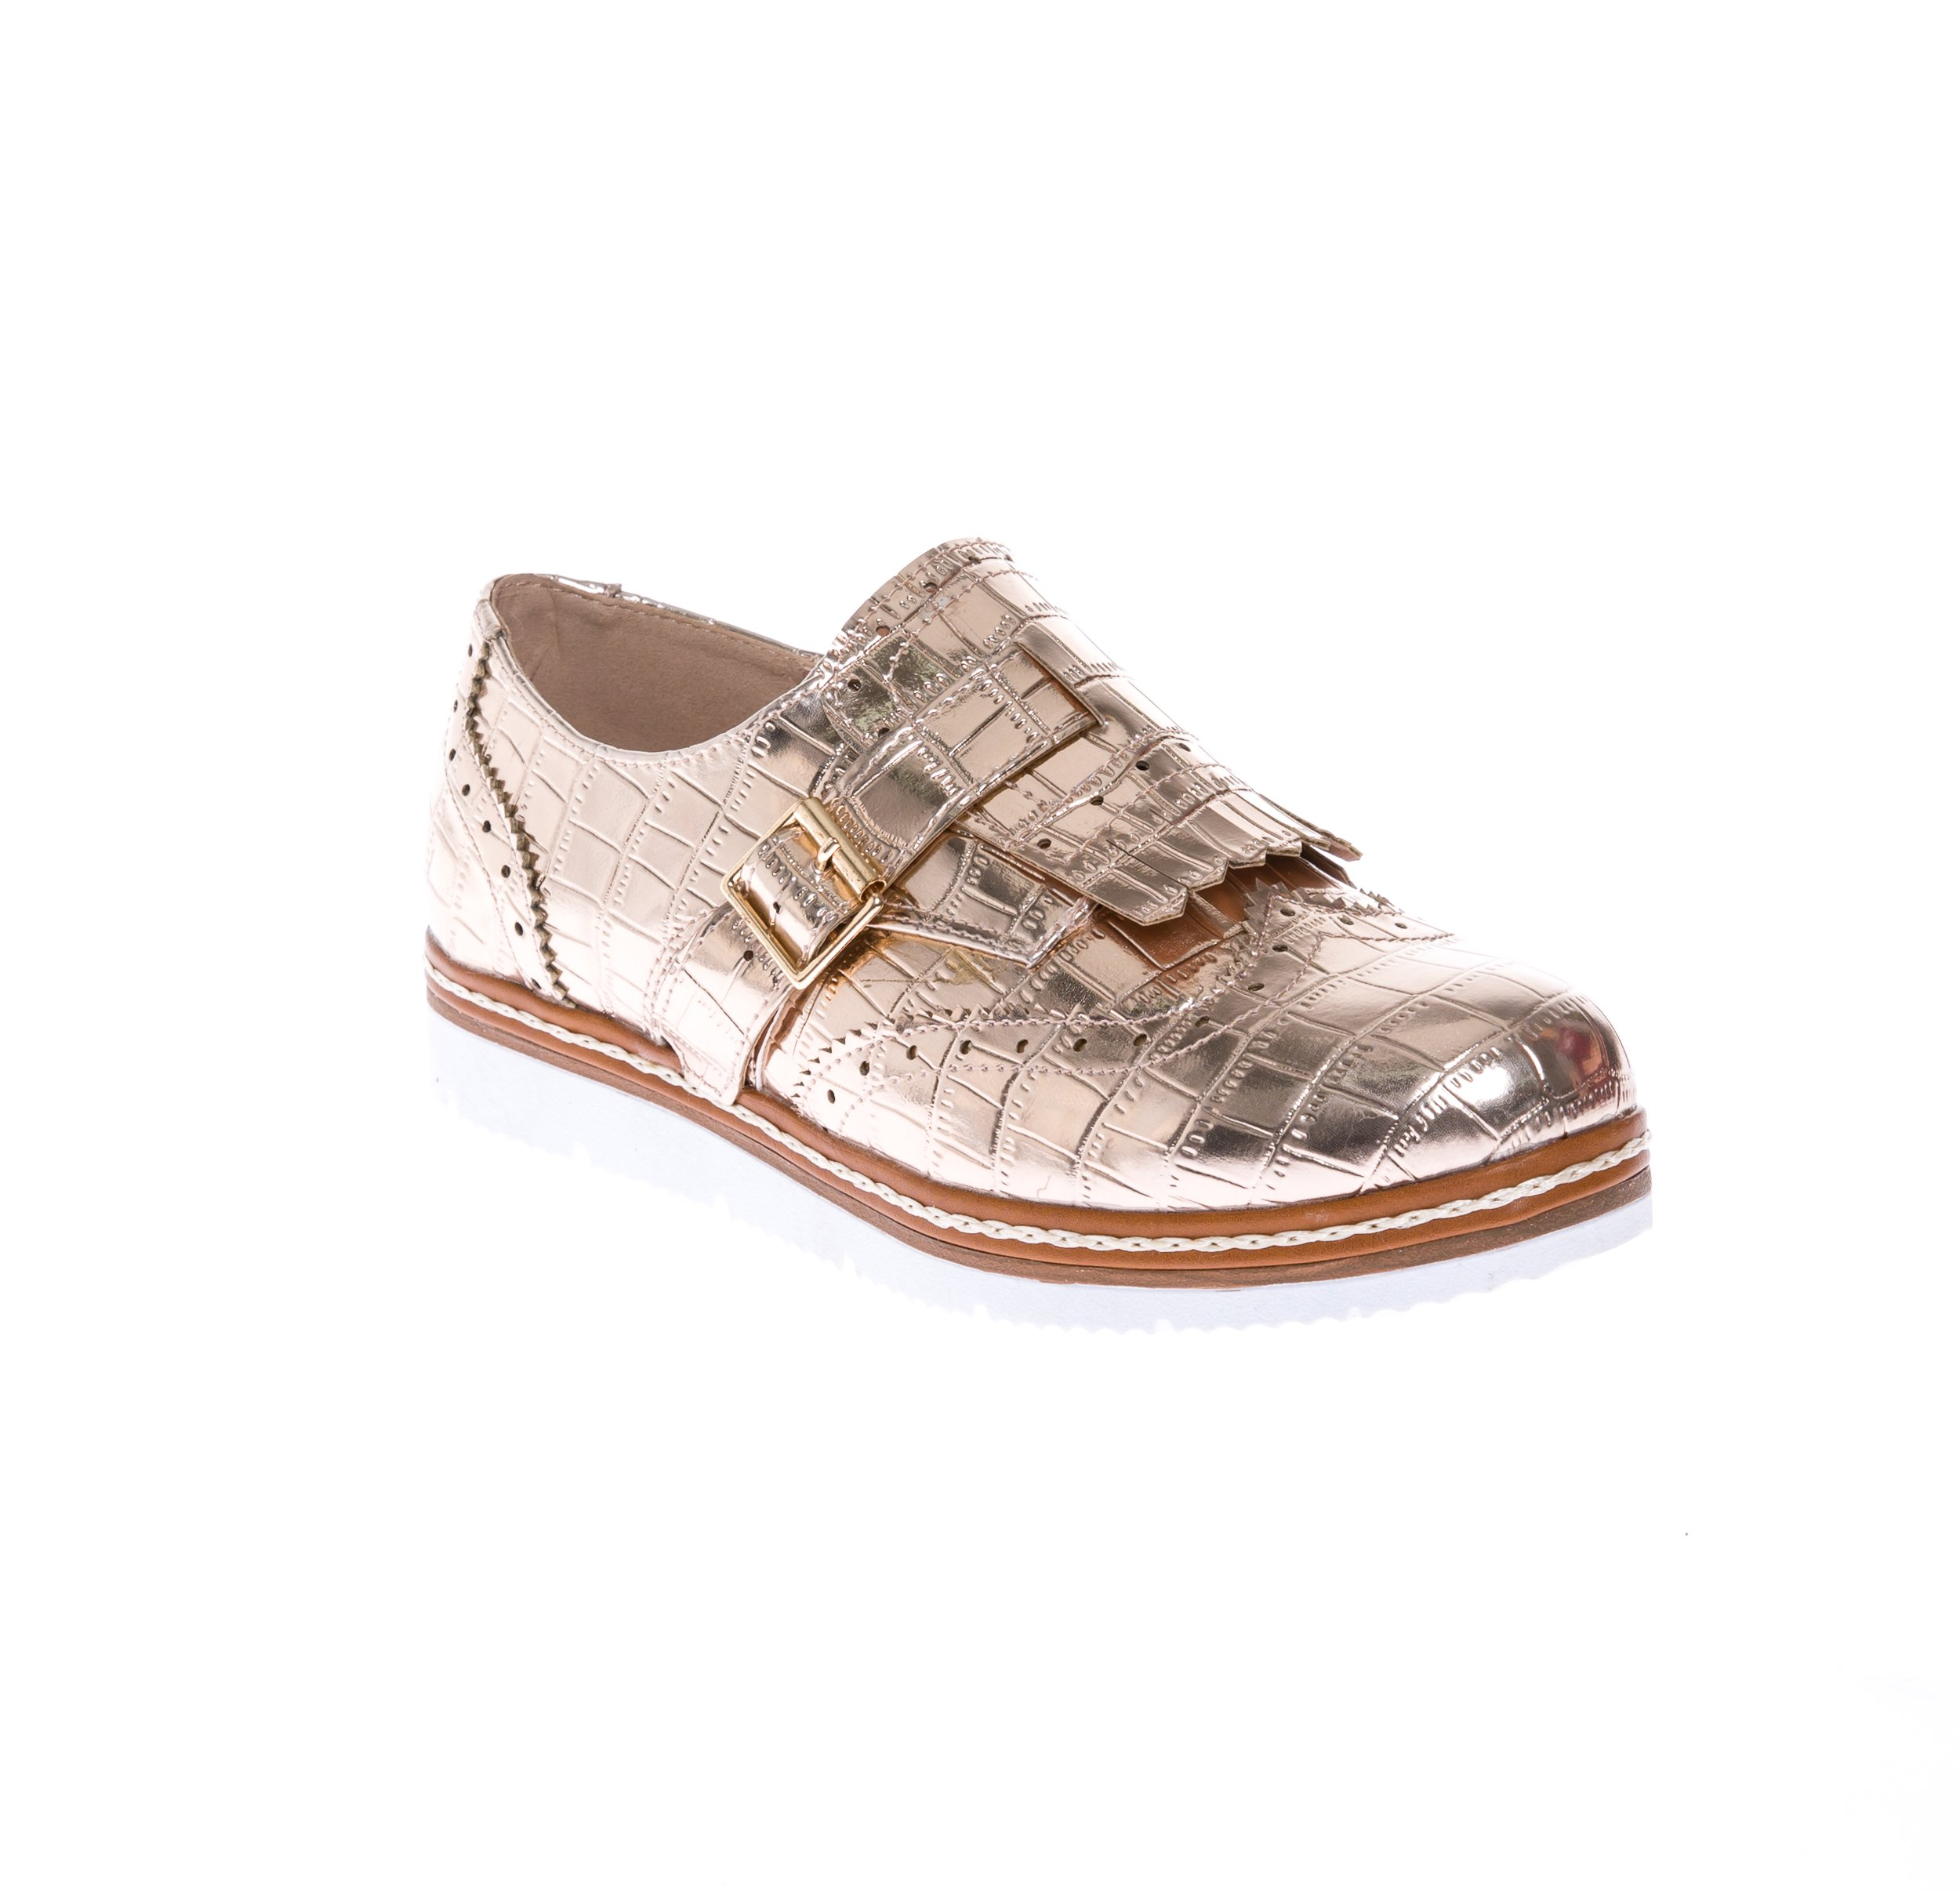 CALICO KIKI Women's Casual Oxford Comfort Flat Shoes (10 US Rose Gold)